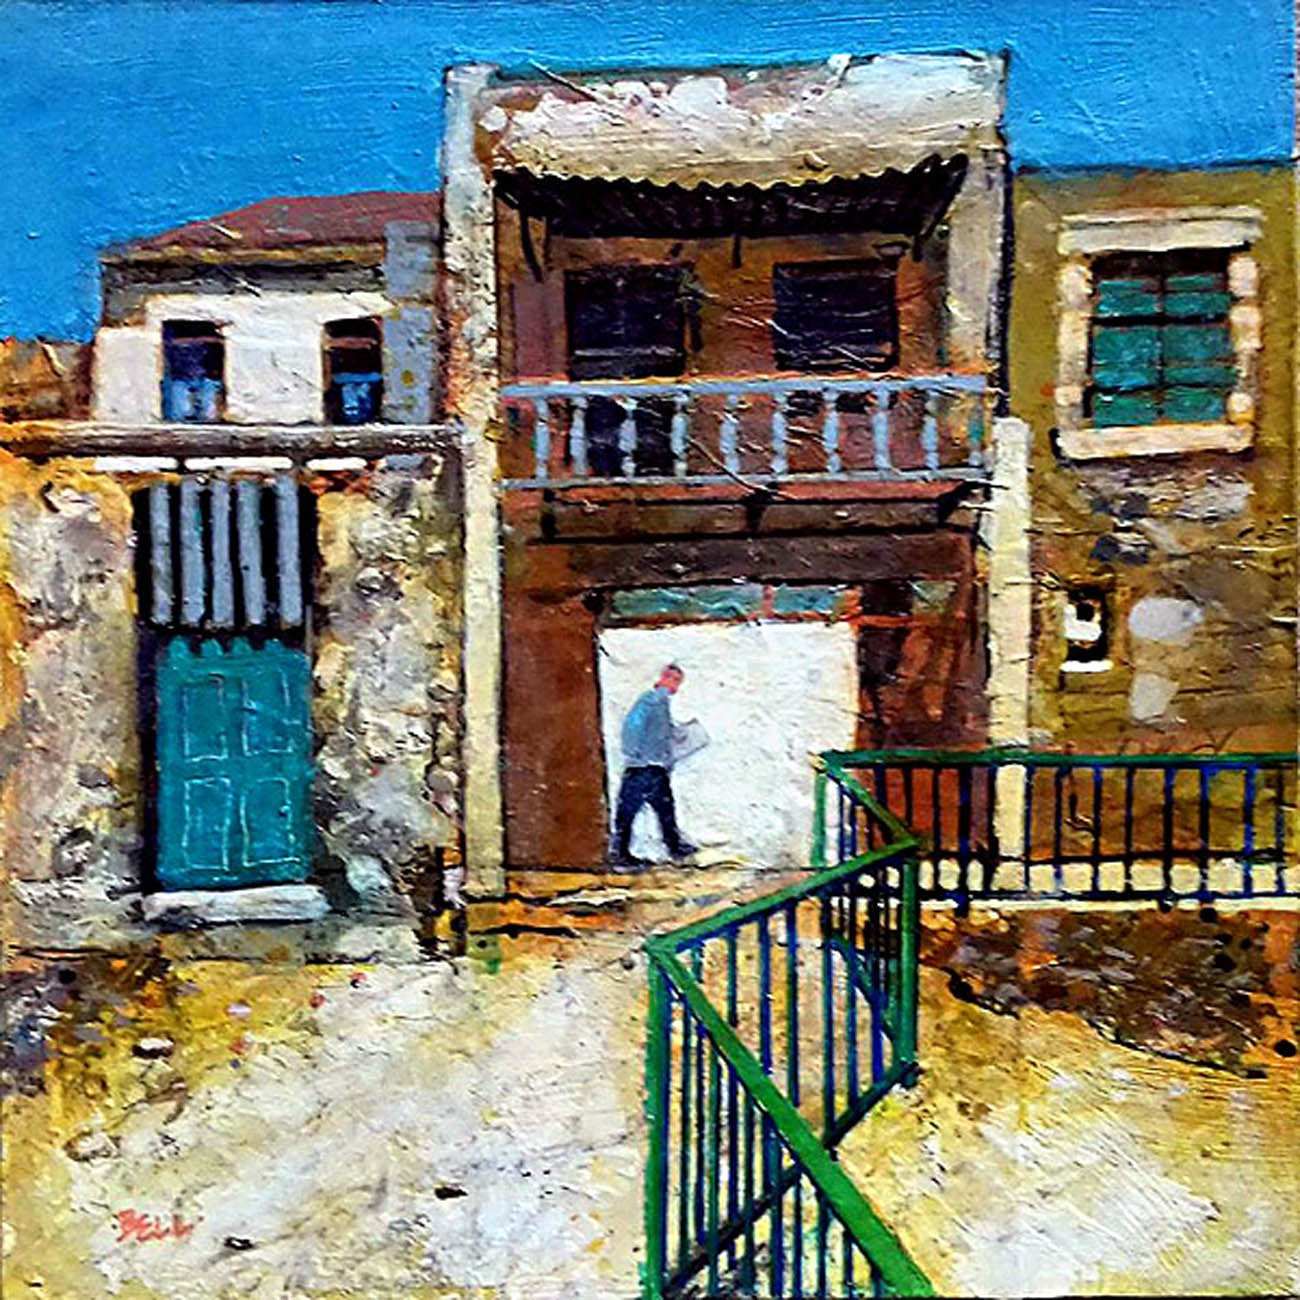 Harry Bell - Old Buildings, Crete. Mixed media on board, 12 x 12 in.